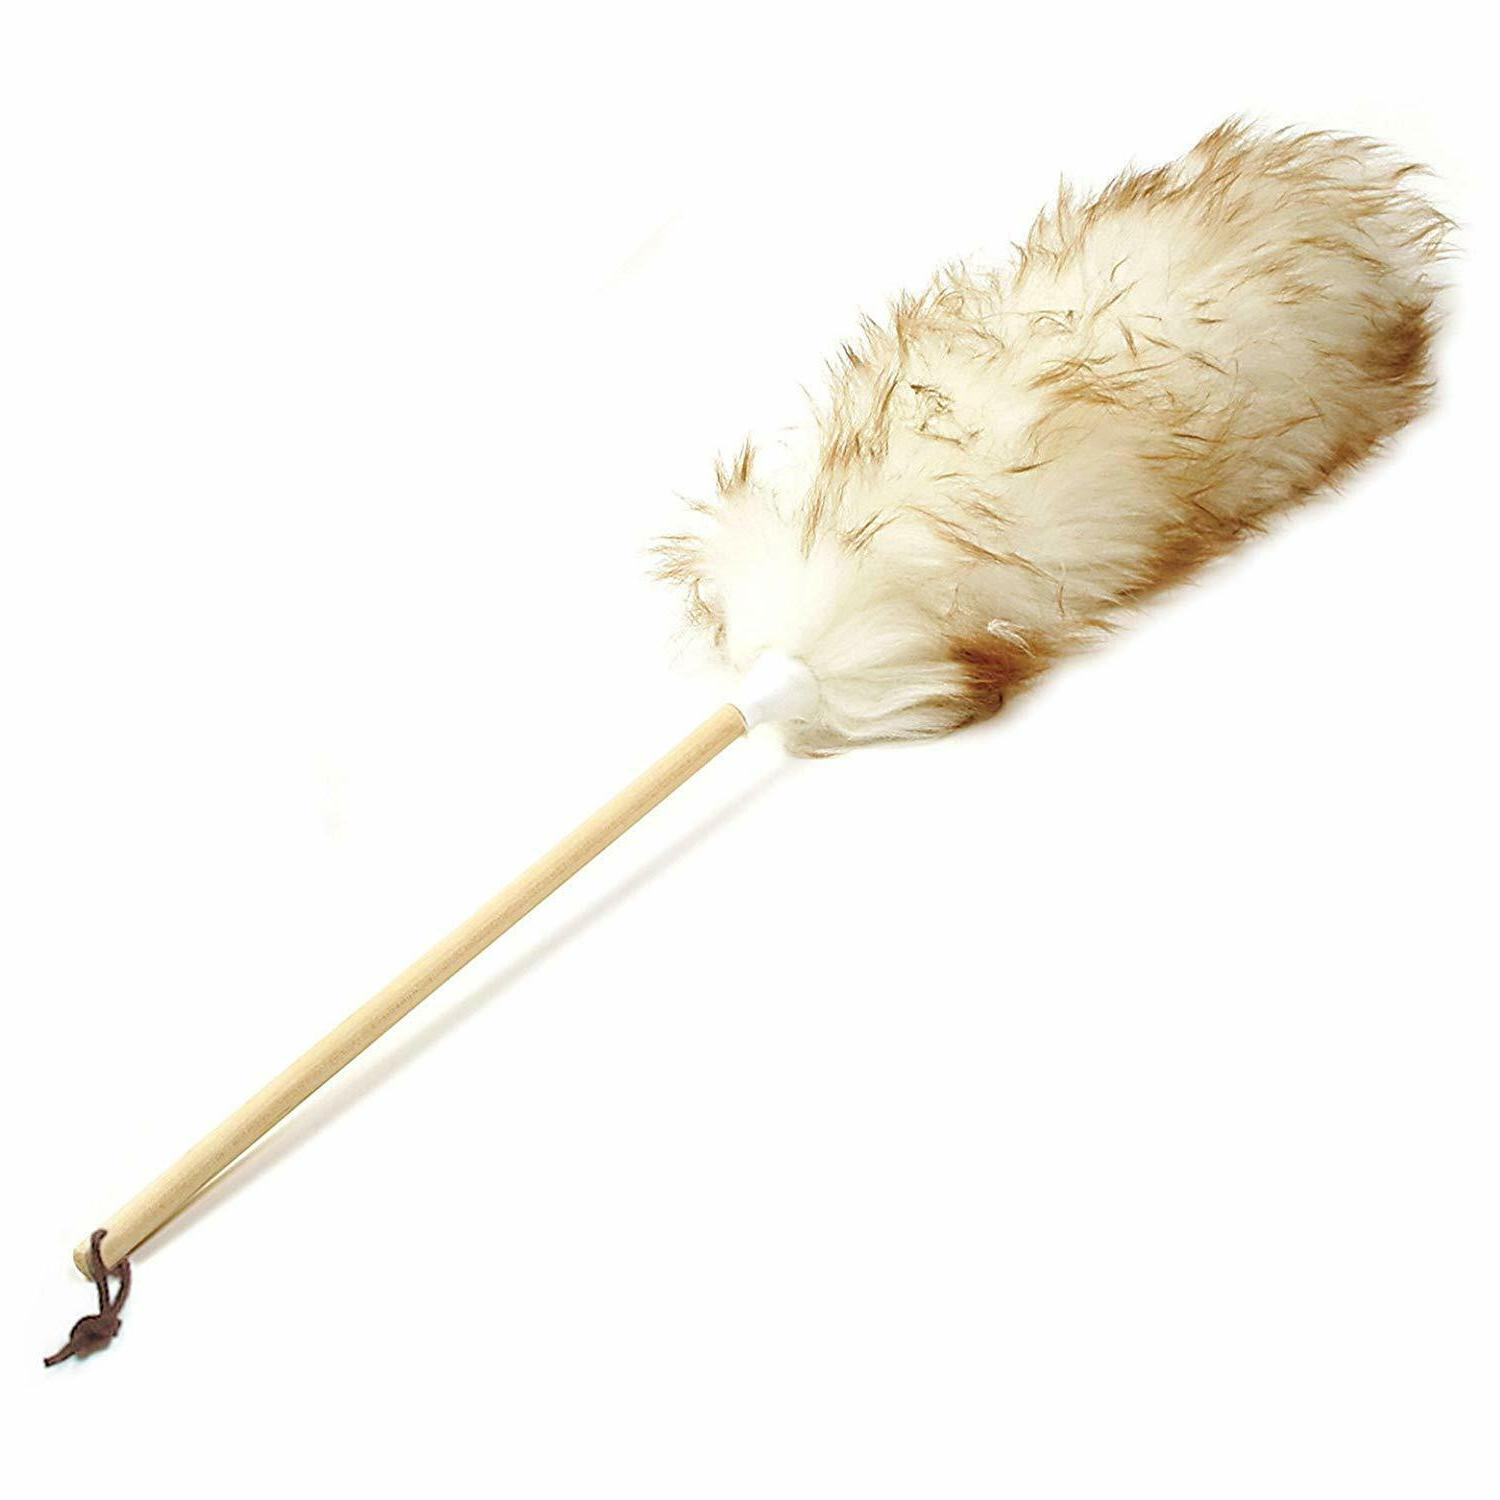 Norpro 24-Inch Pure Lambs Wool Duster with Wood Handle,Easy